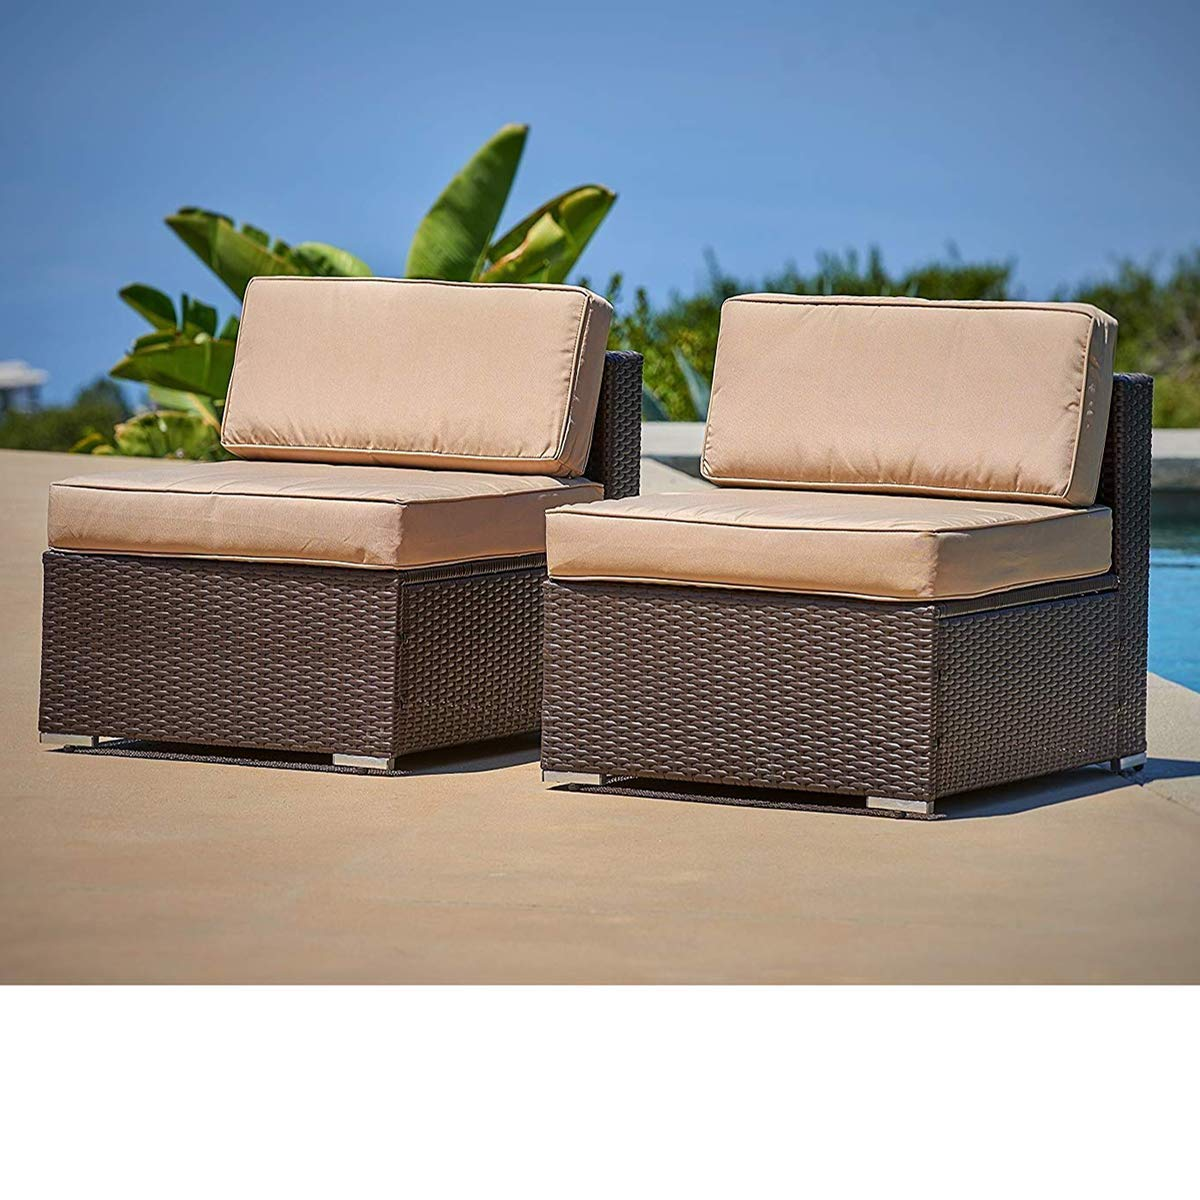 SUNCROWN Outdoor Furniture Brown Wicker Patio Sofa Chairs 2, Additional Seats for 7-Piece Sets with Washable Cushion Covers, Backyard, Pool by SUNCROWN